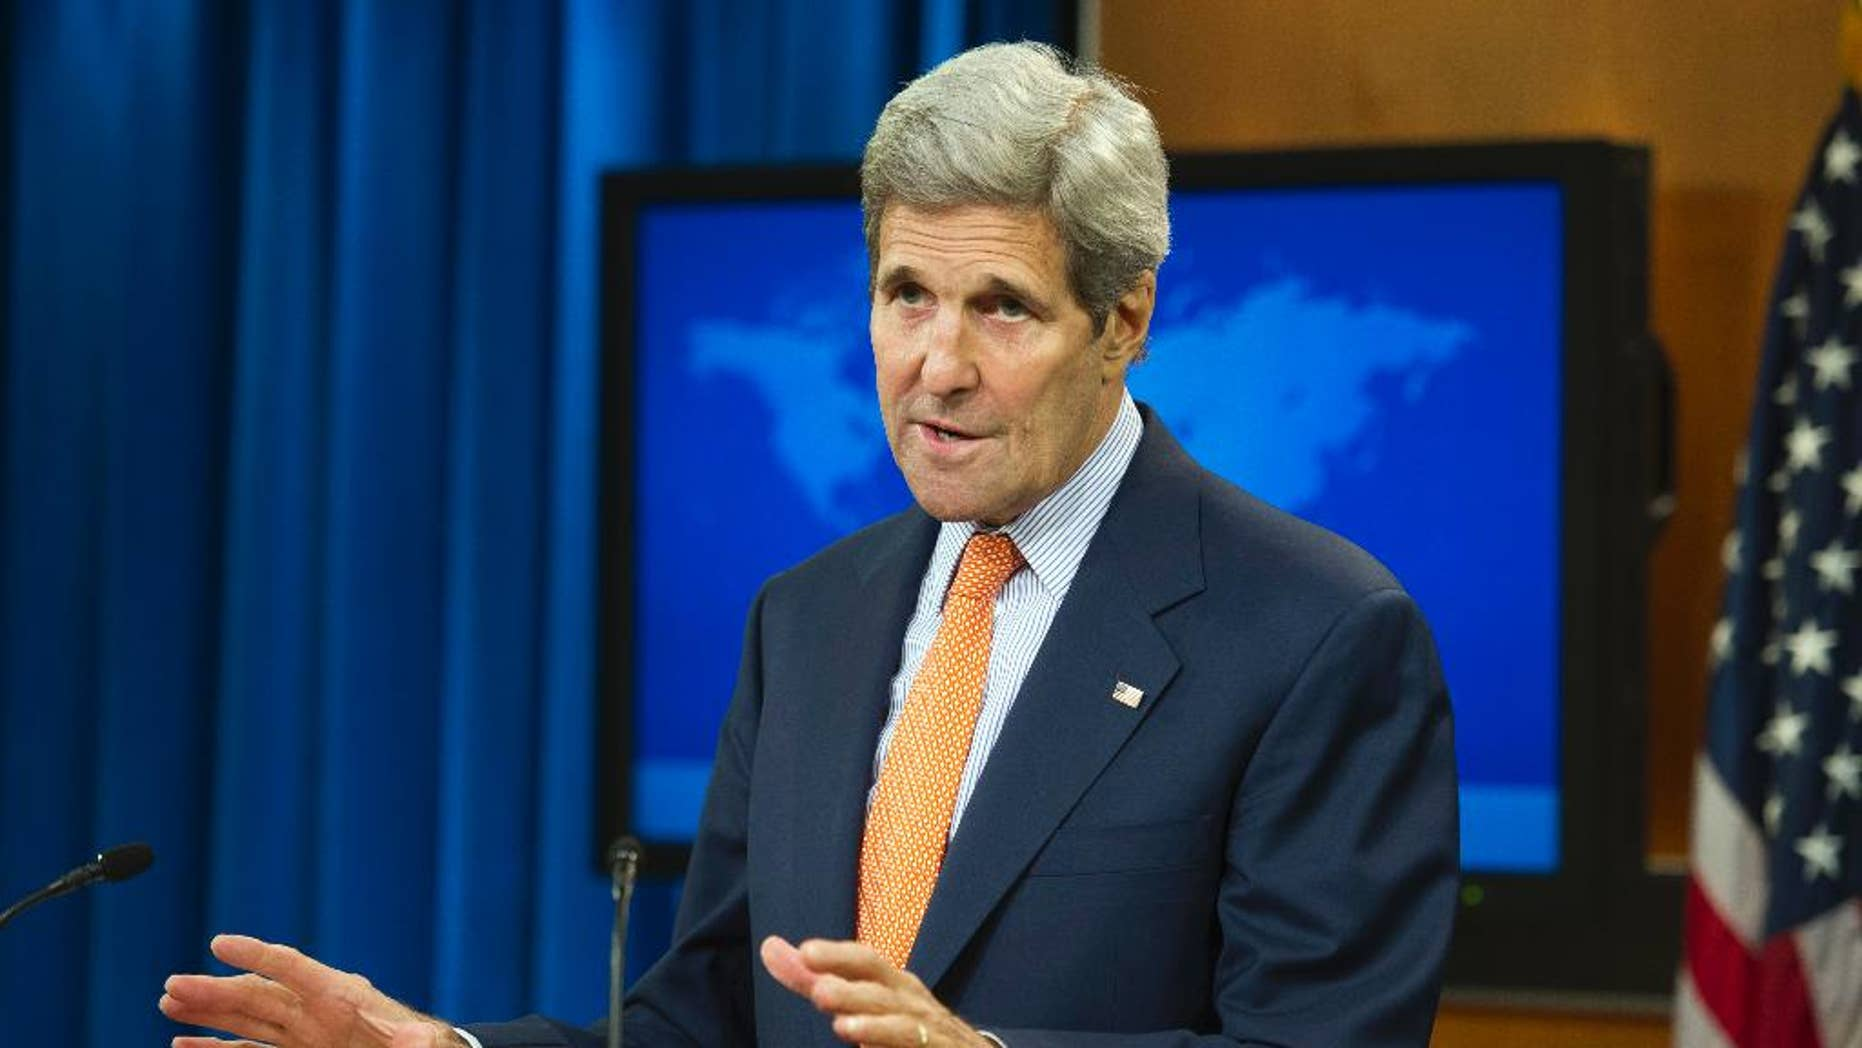 Secretary of State John Kerry speaks at the State Department in Washington, Thursday, June 25, 2015, to release it's annual human rights reports. The Obama administration has once again identified Iran and Cuba as serial human rights abusers even as it accelerates attempts to improve relations with both countries. (AP Photo/Cliff Owen)